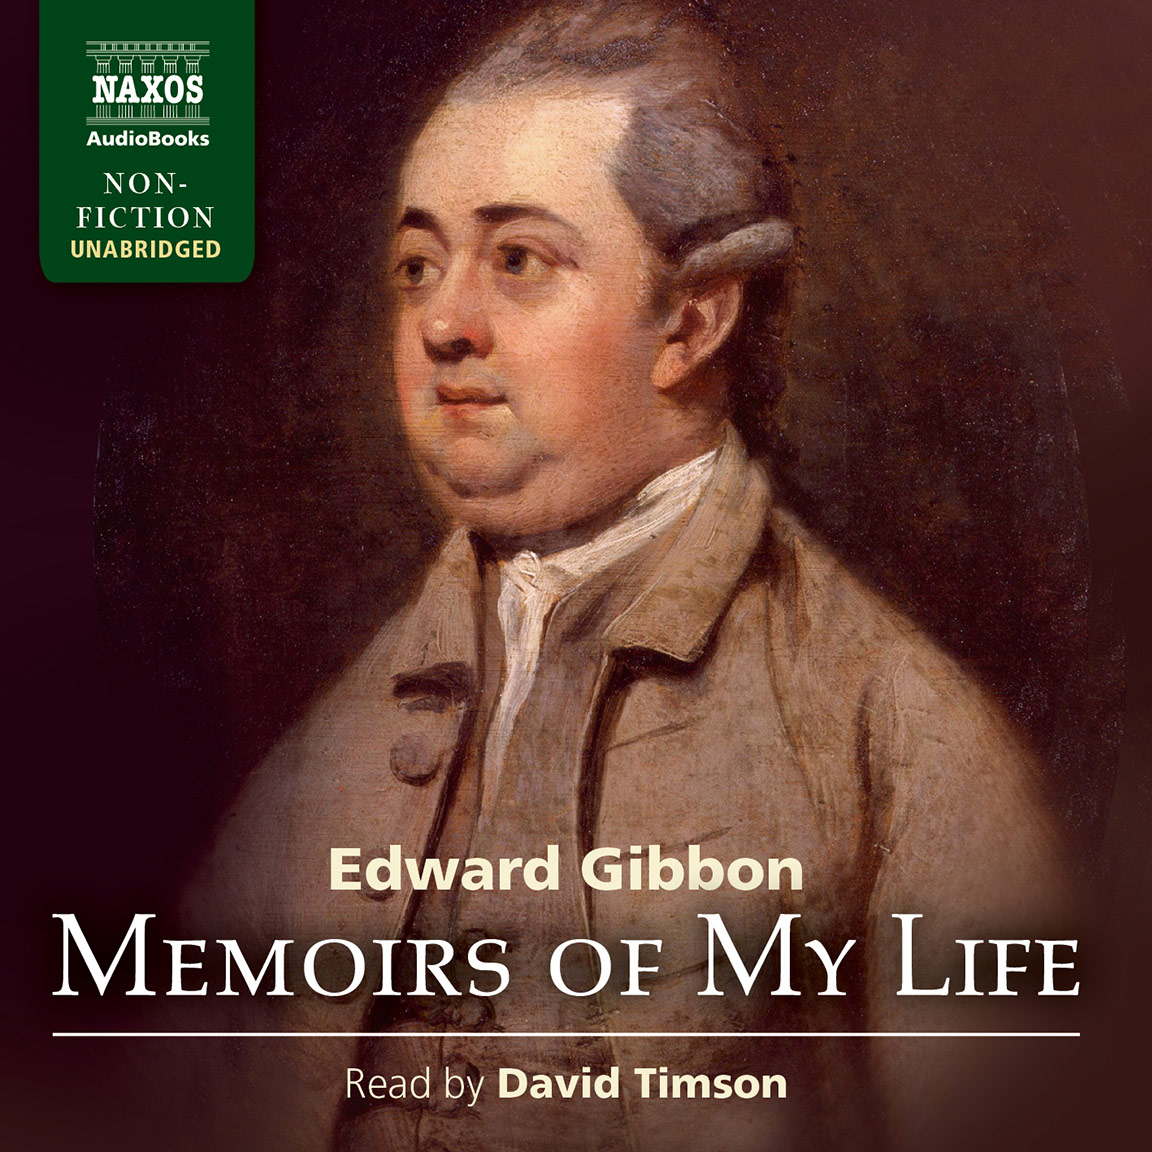 Memoirs of My Life (unabridged)